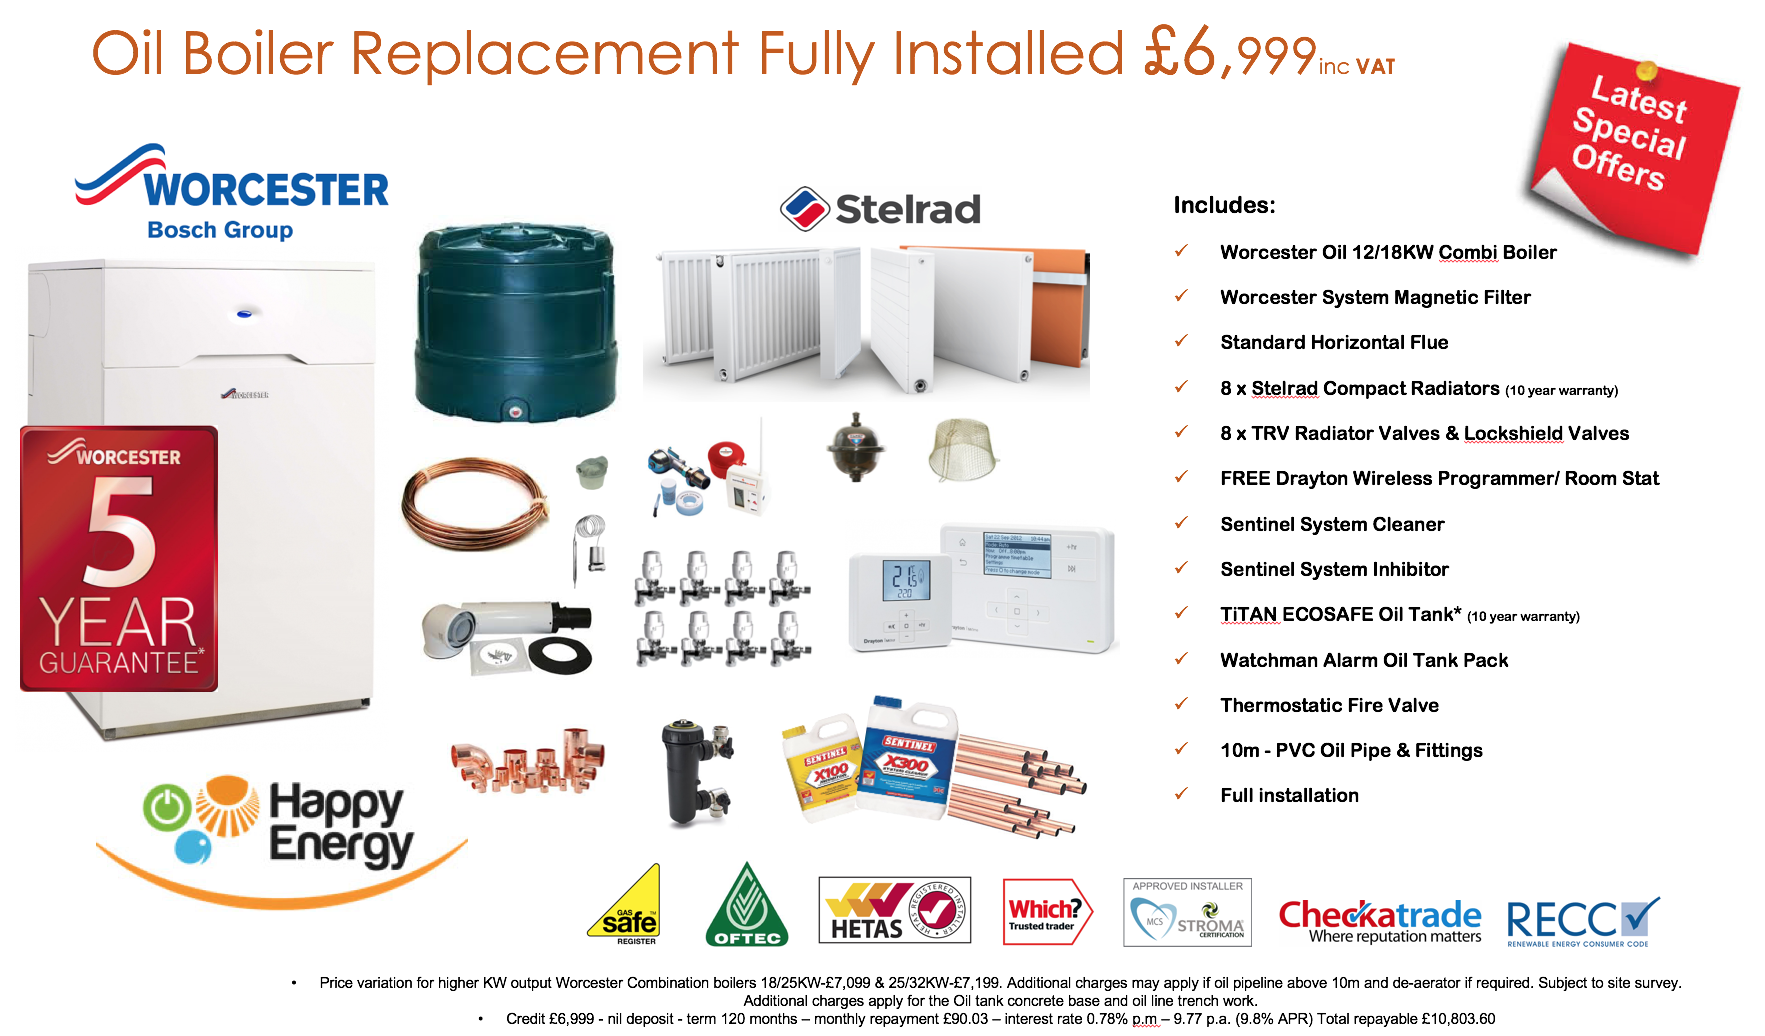 Happy Energy Complete Home Oil Central Heating System - £90 p.m.*